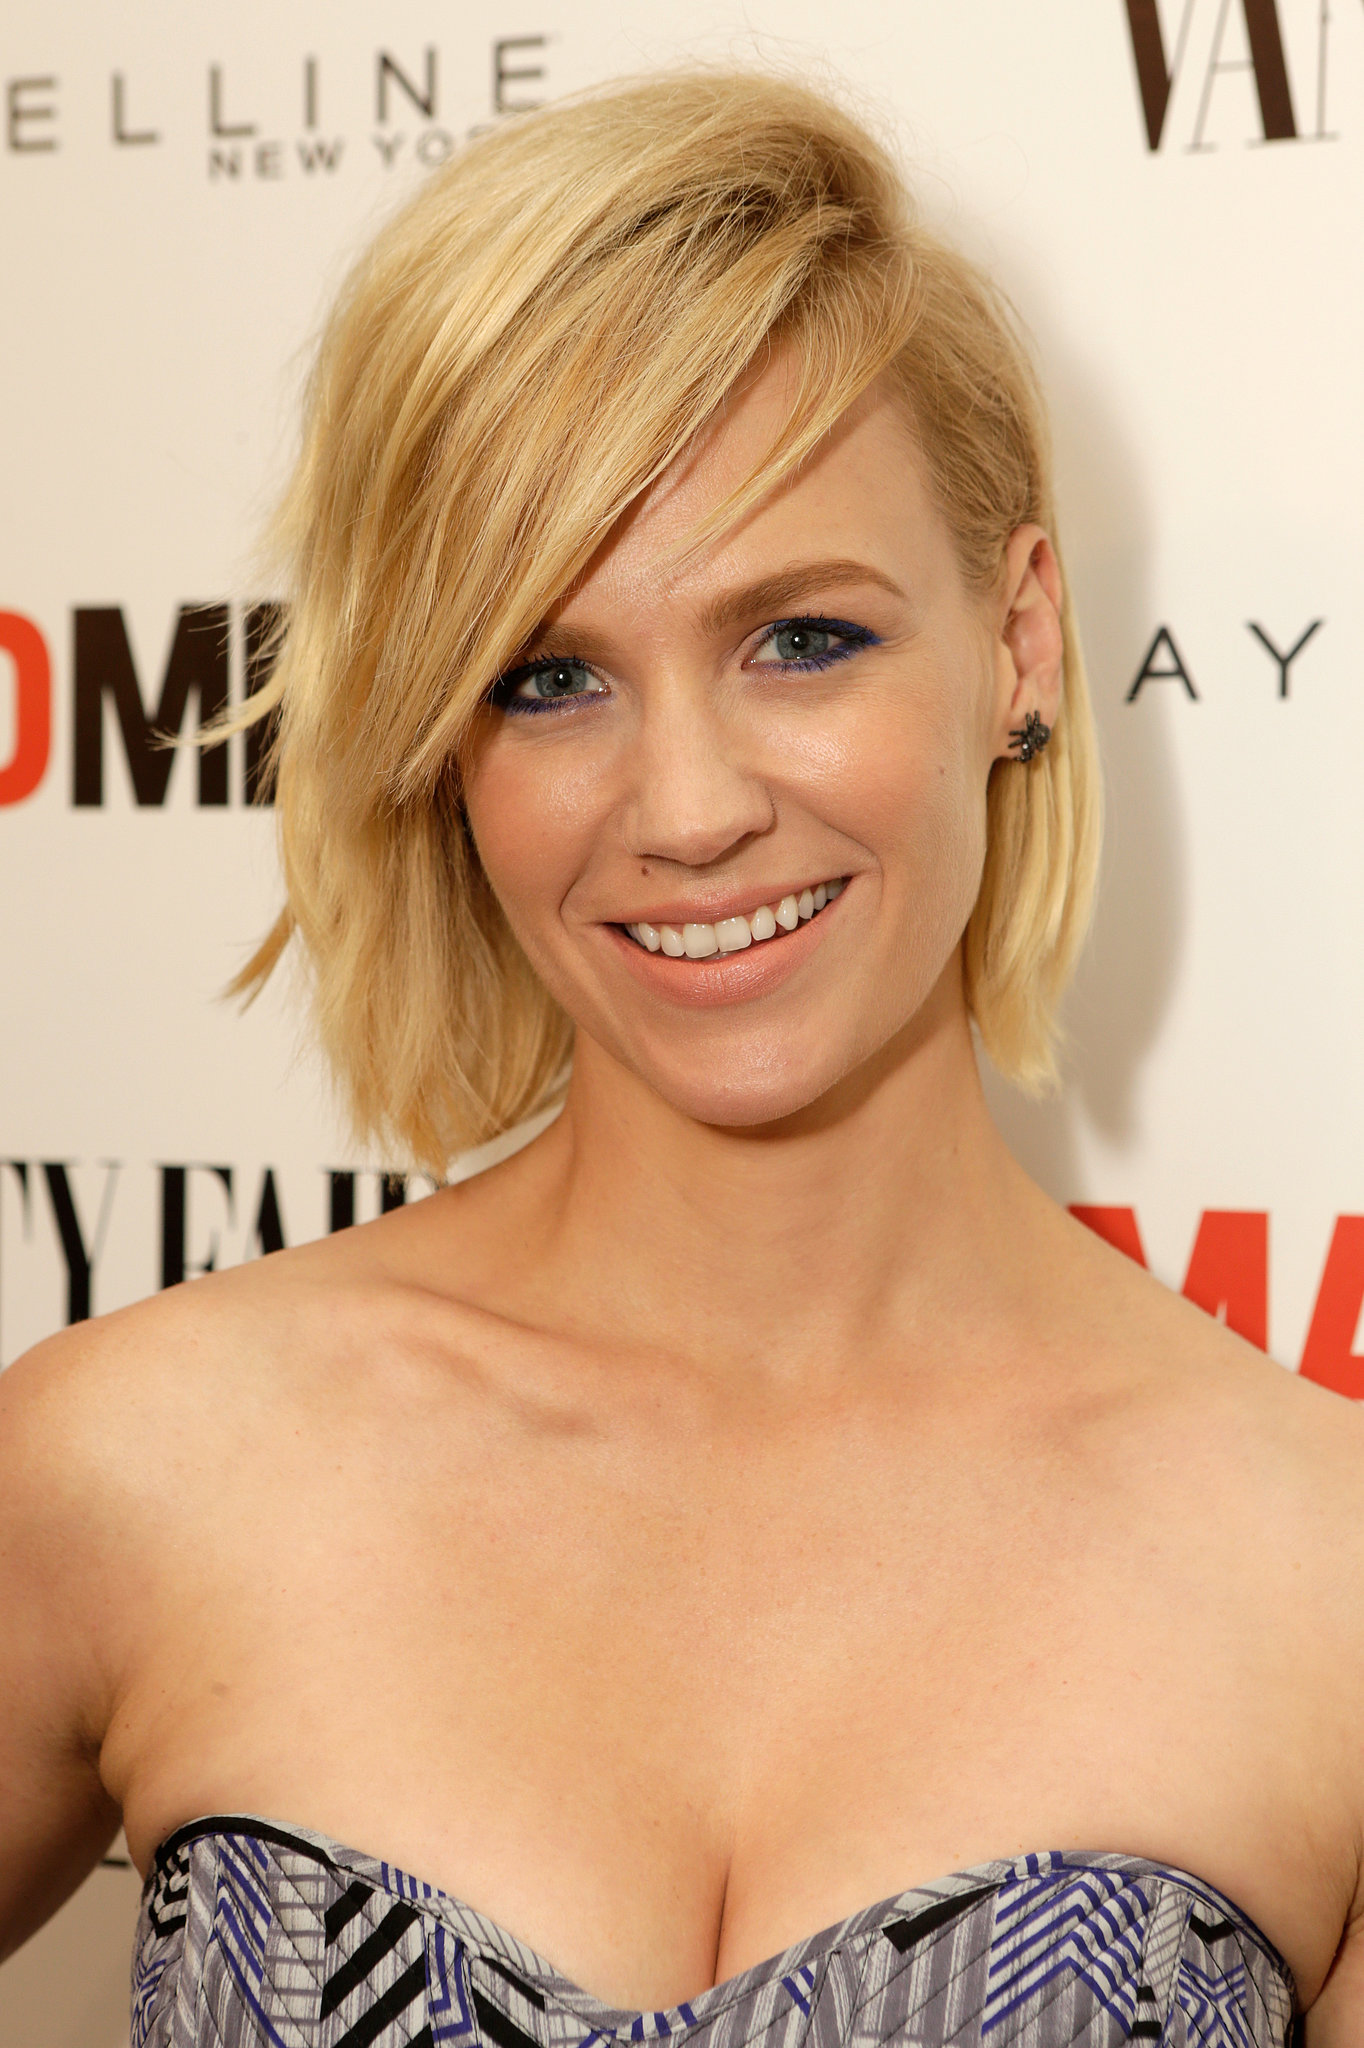 At the Vanity Fair and Maybelline toast to Mad Men, January Jones went for